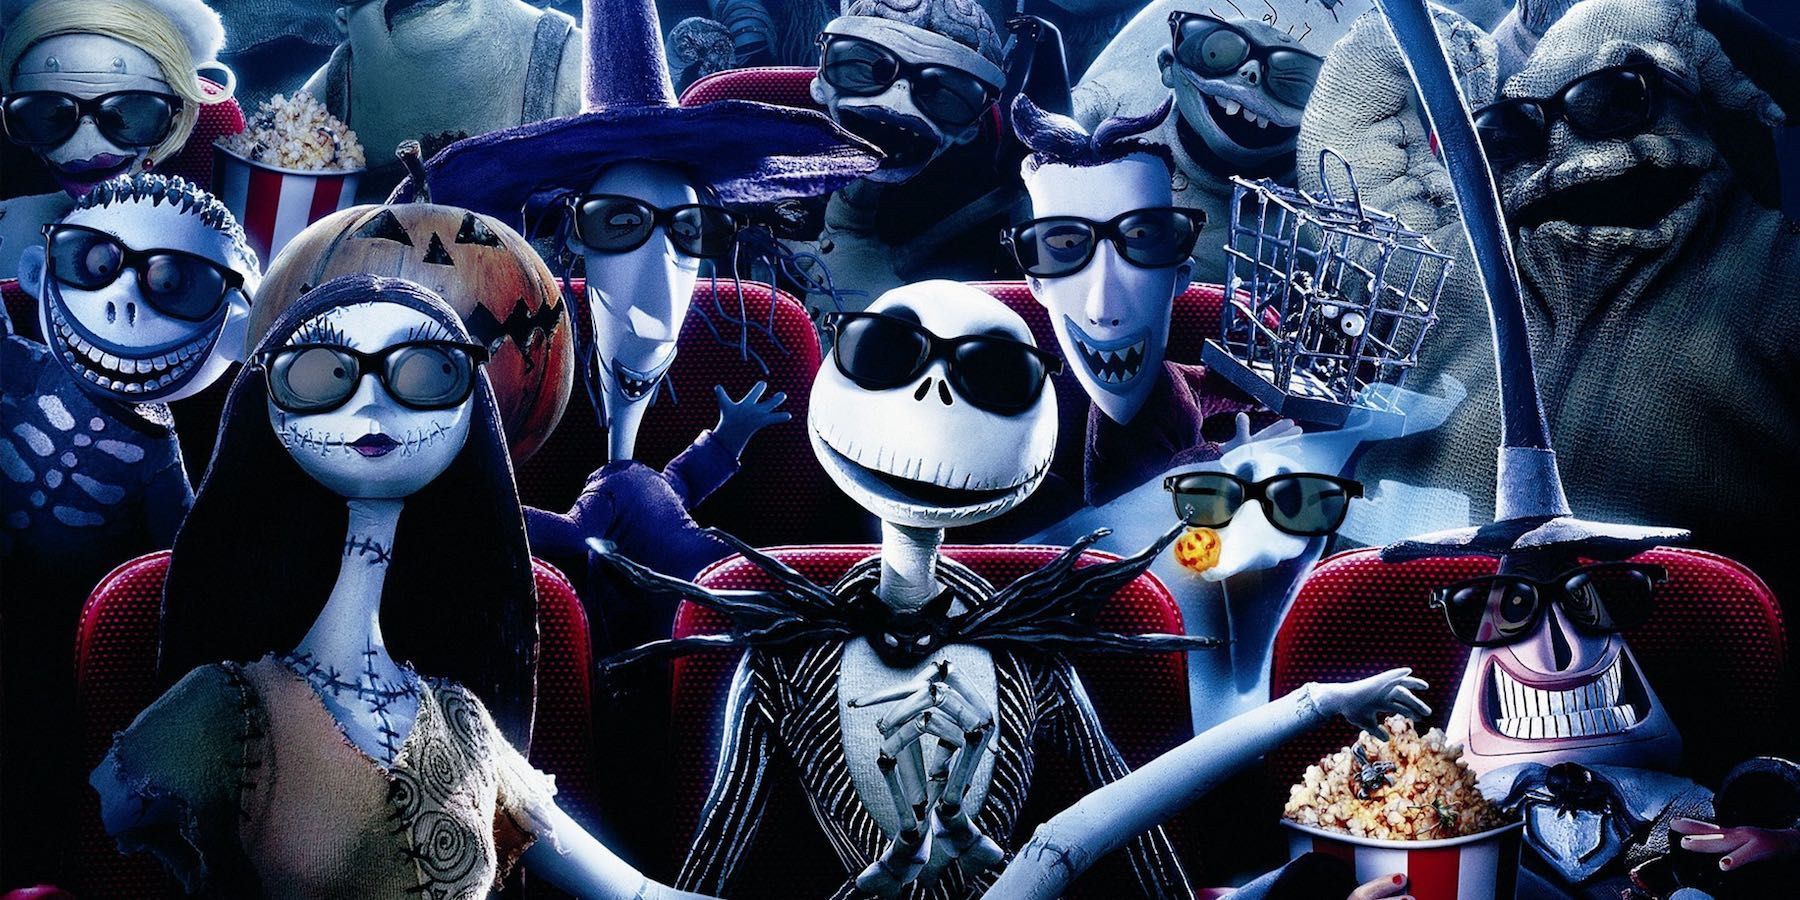 https://static3.srcdn.com/wordpress/wp-content/uploads/2019/02/The-Nightmare-Before-Christmas-3D-Poster.jpg